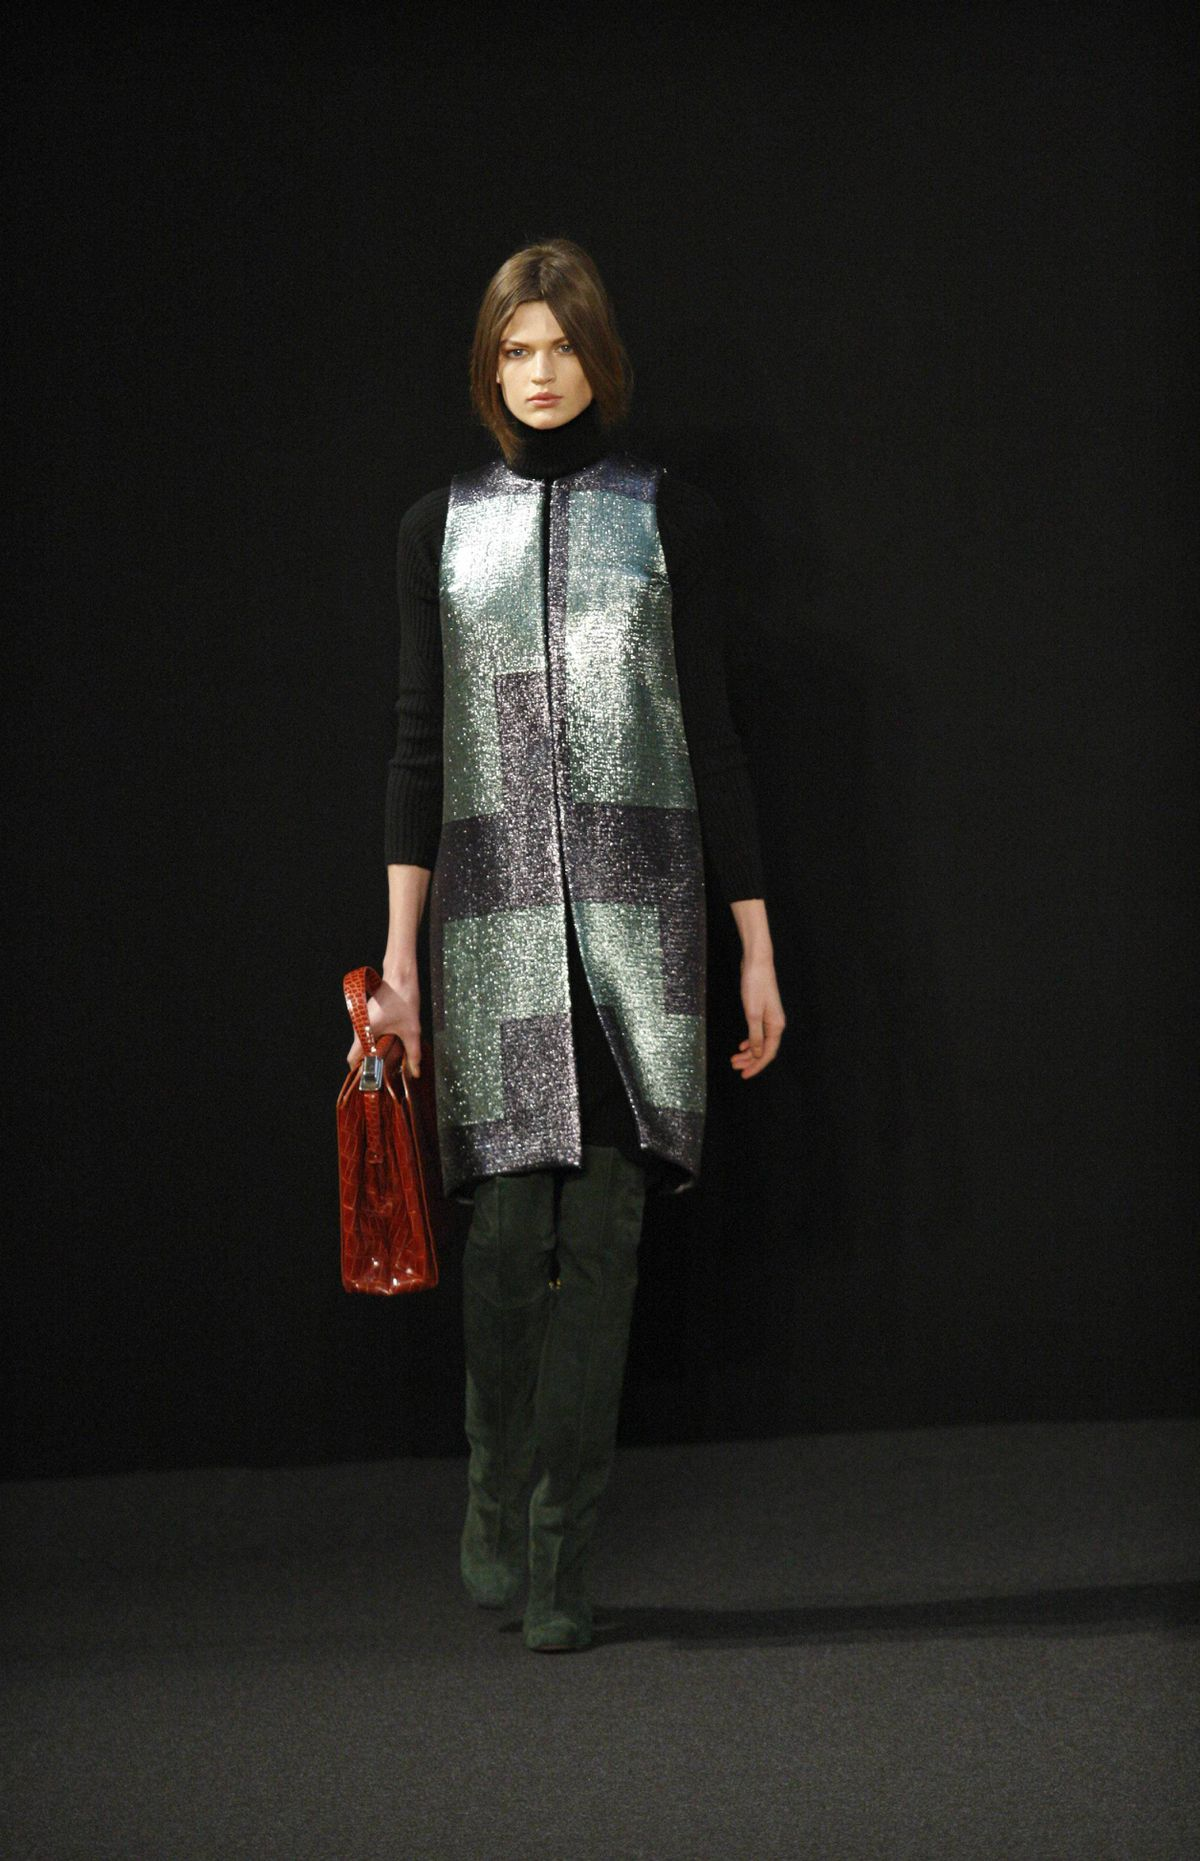 Ports 1961 interests me, not just for the Canadian connection (CEO and designer Fiona Cibani hails from Vancouver) but because the line is actually deceiving: While first impressions suggest restrained, up close, everything is highly decadent. For fall, Cibani was inspired by glass blowing techniques.